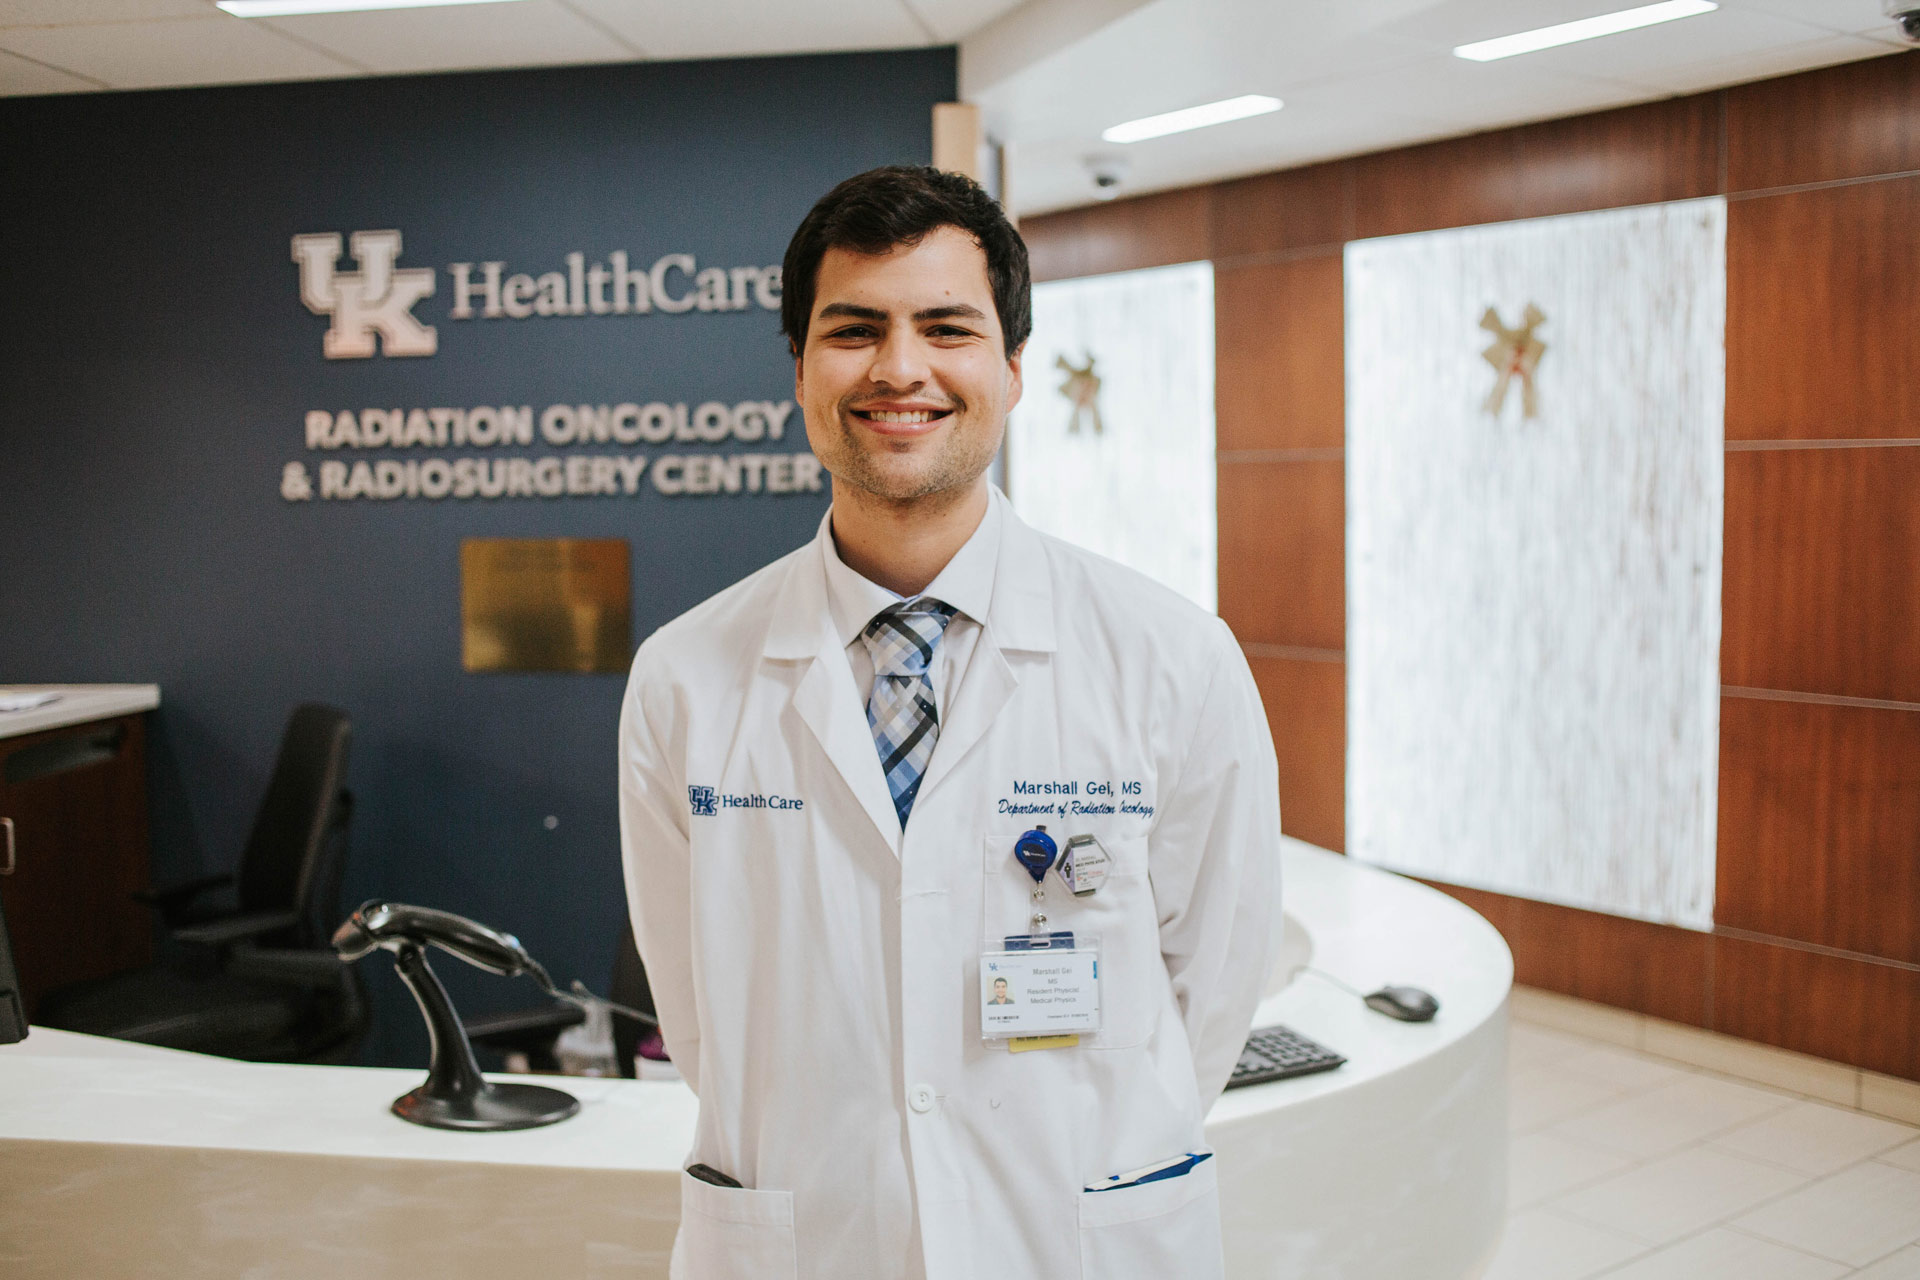 Marshall standing in the UK HealthCare Radiation Oncology and Radiosurgery Center. He is wearing a white doctor's coat and a blue plaid tie.